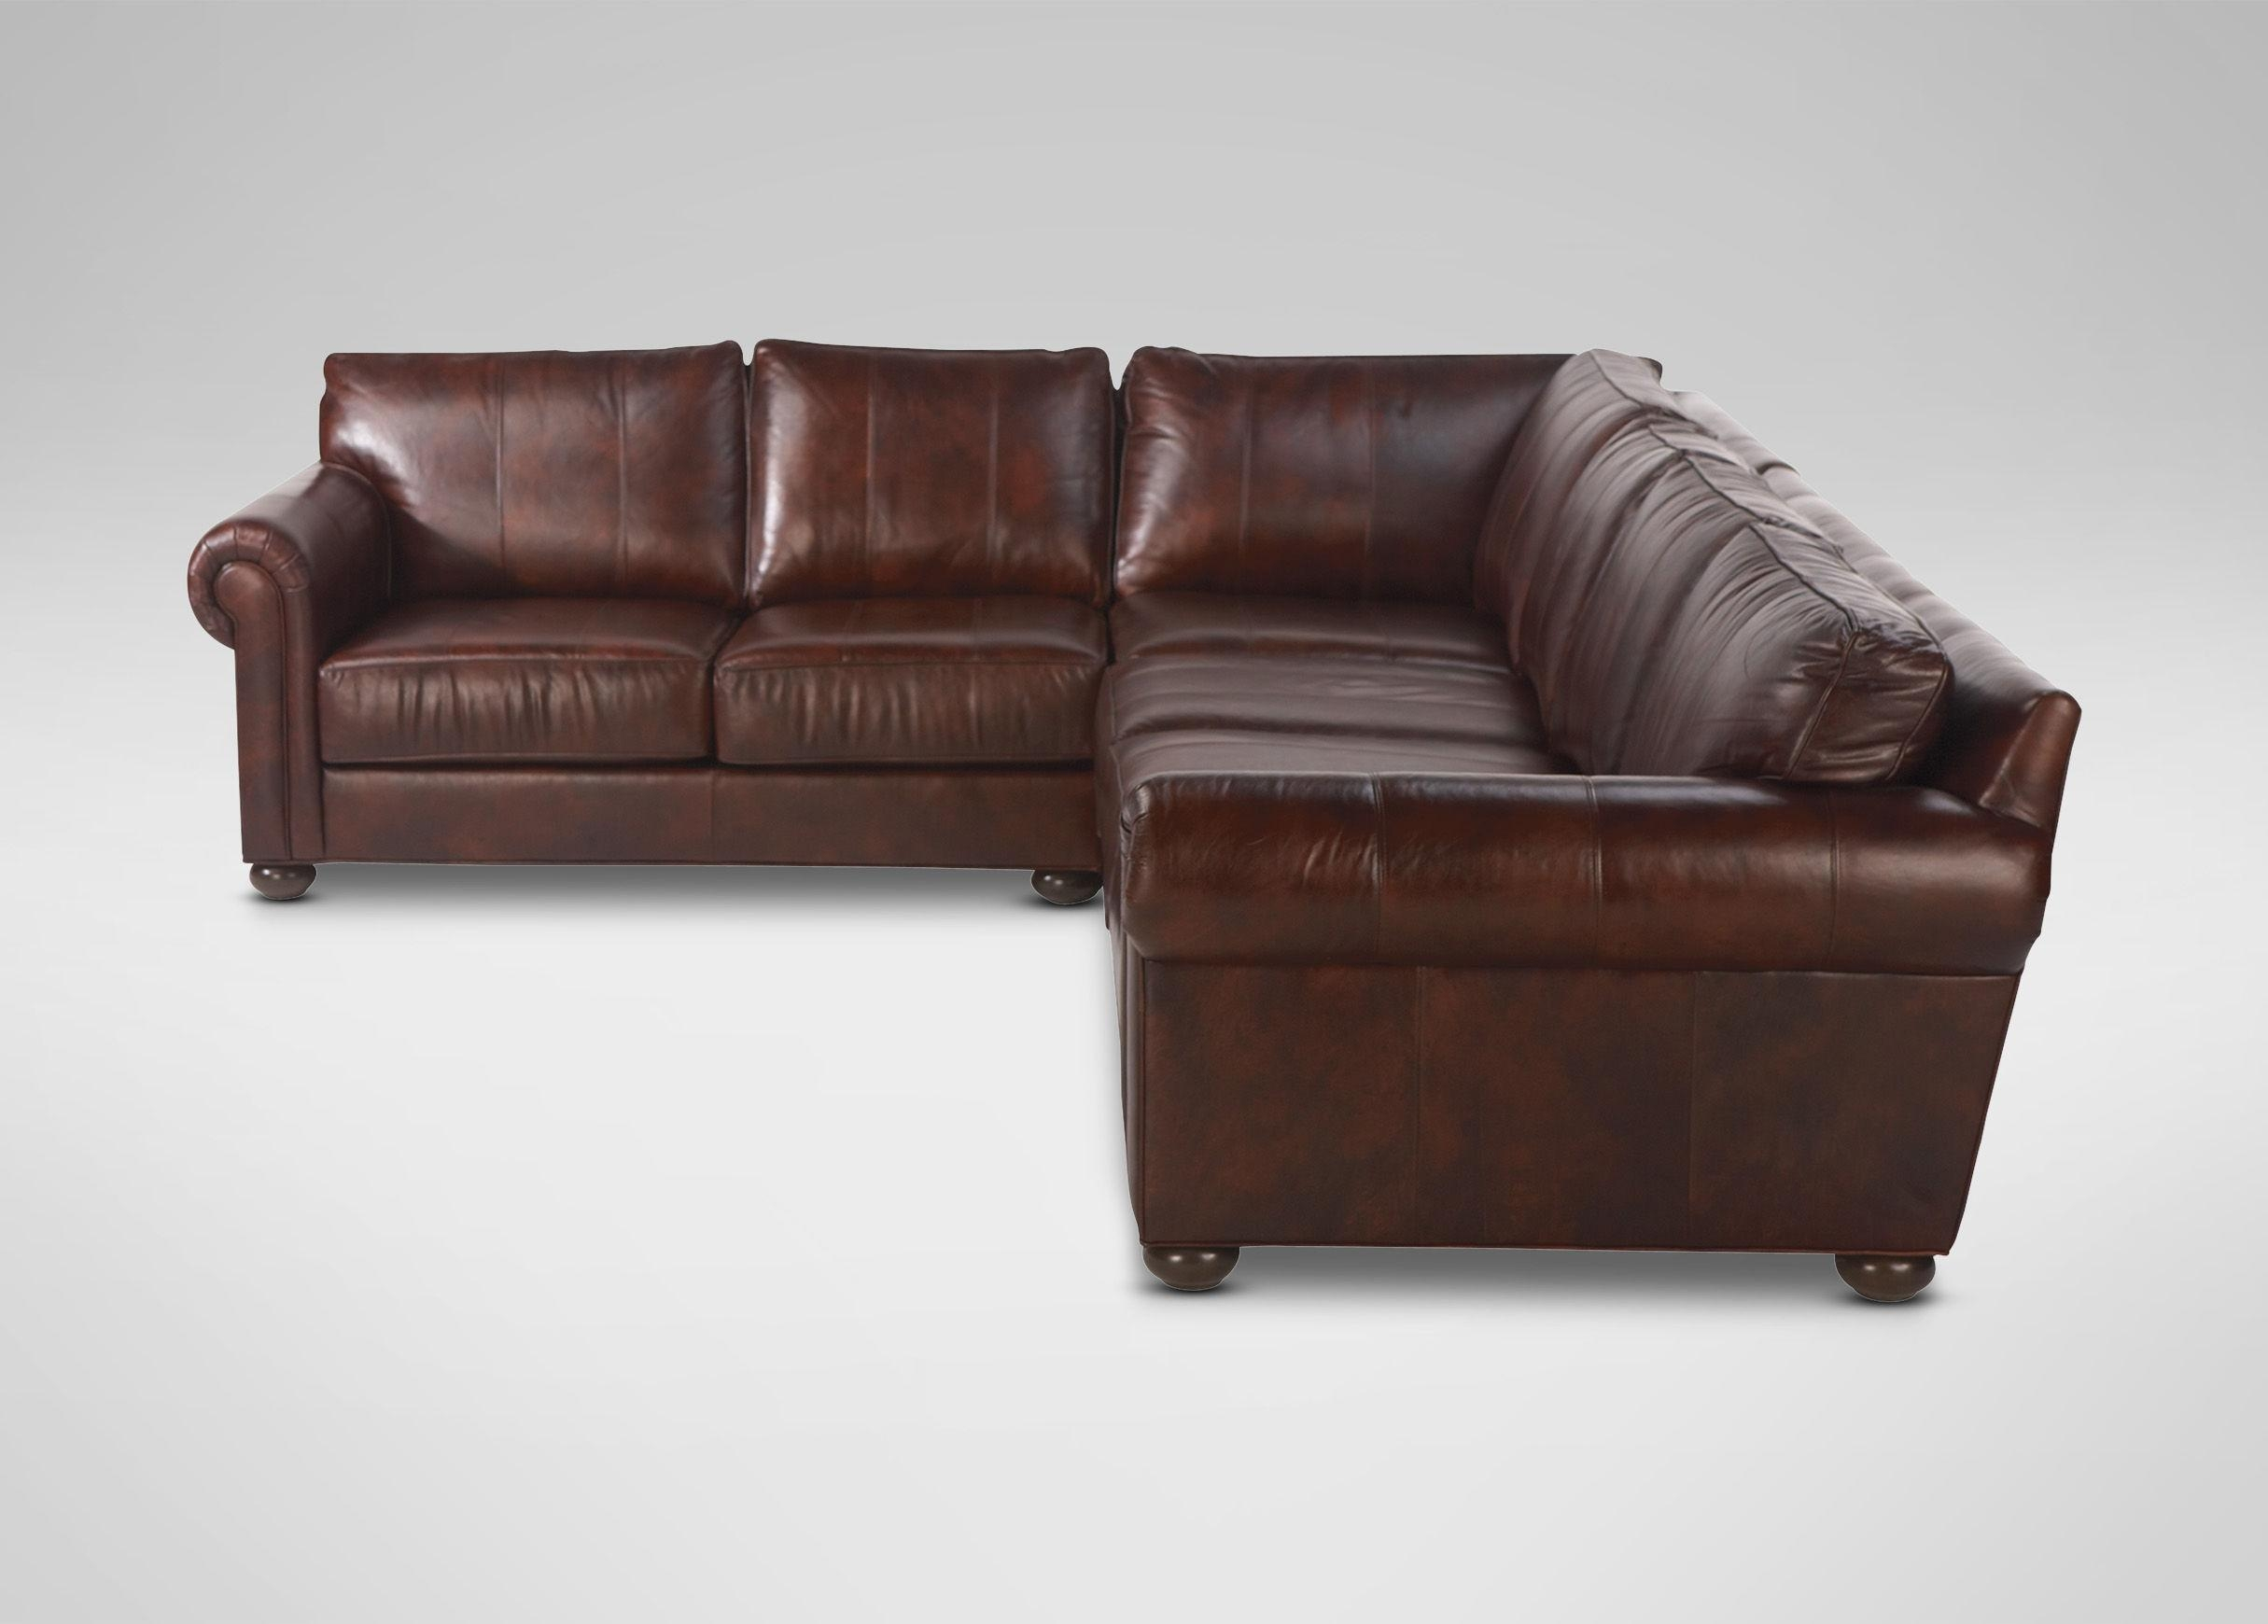 Decorating: Interesting Design Deep Sectional Sofa With Marvelous With Deep Seat Leather Sectional (View 13 of 15)